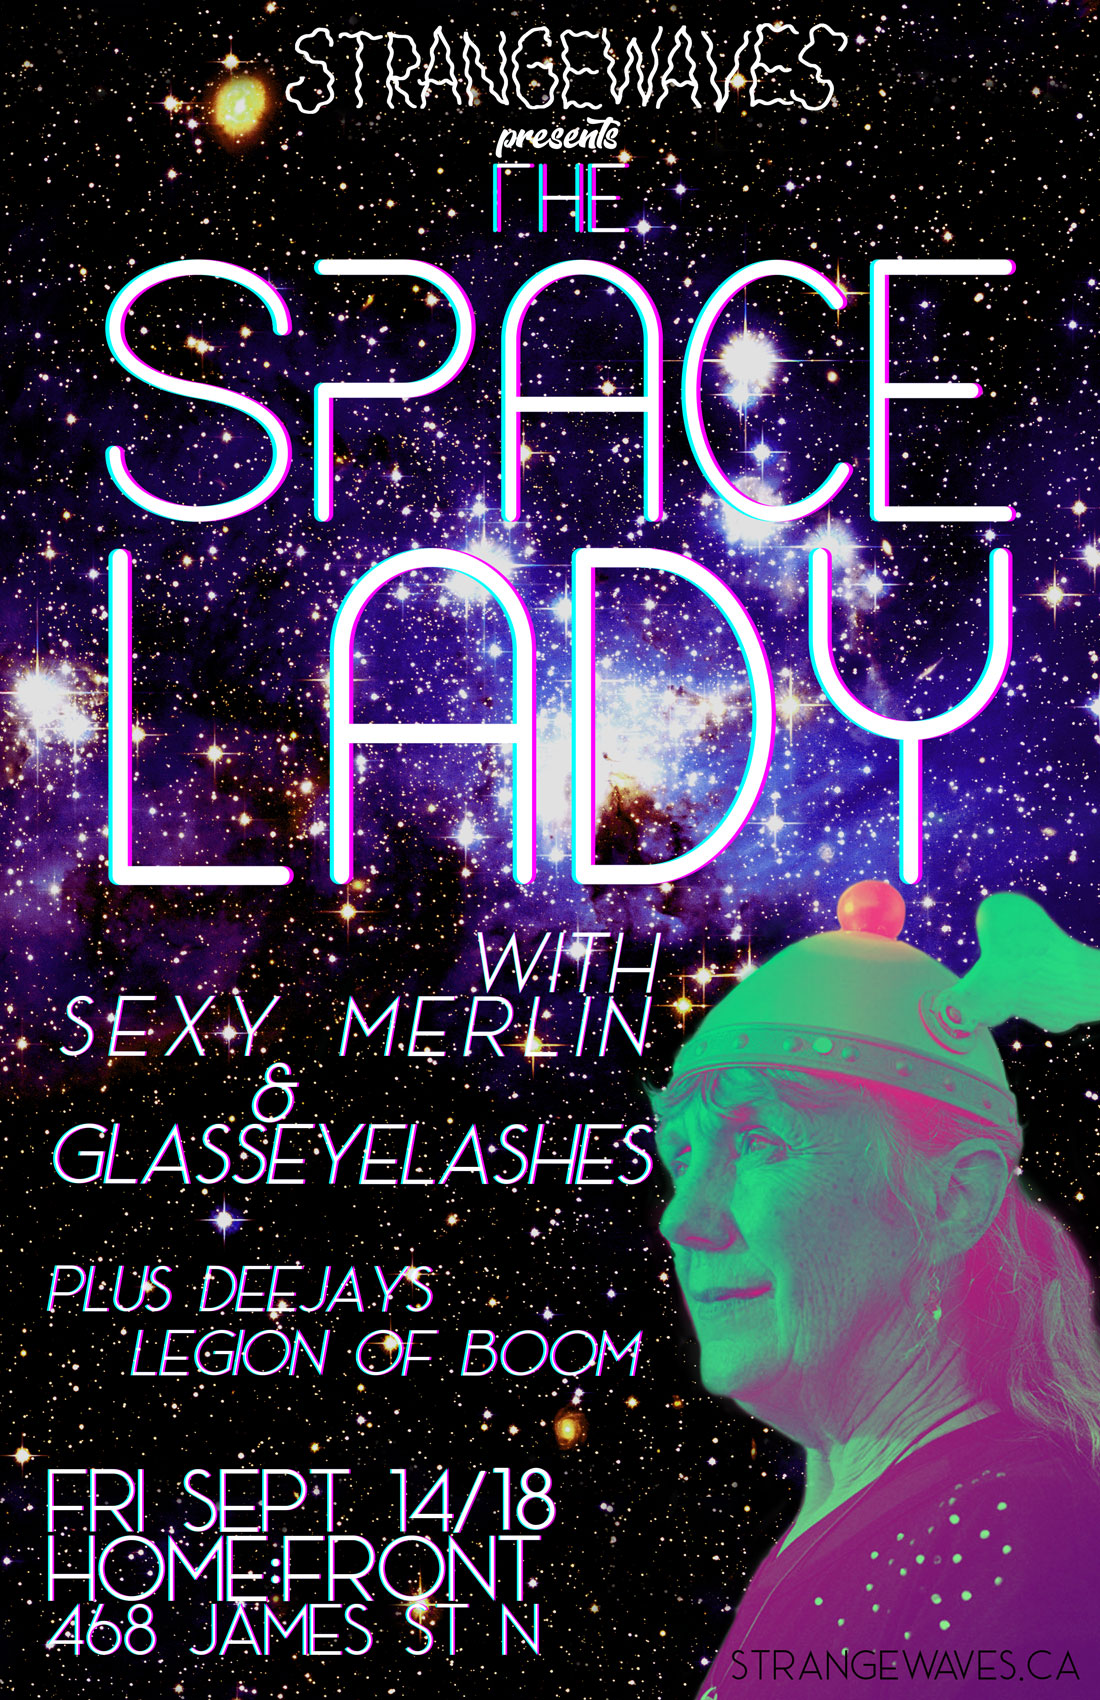 The Space Lady, Sexy Merlin, glassEYElashes  @Home:Front